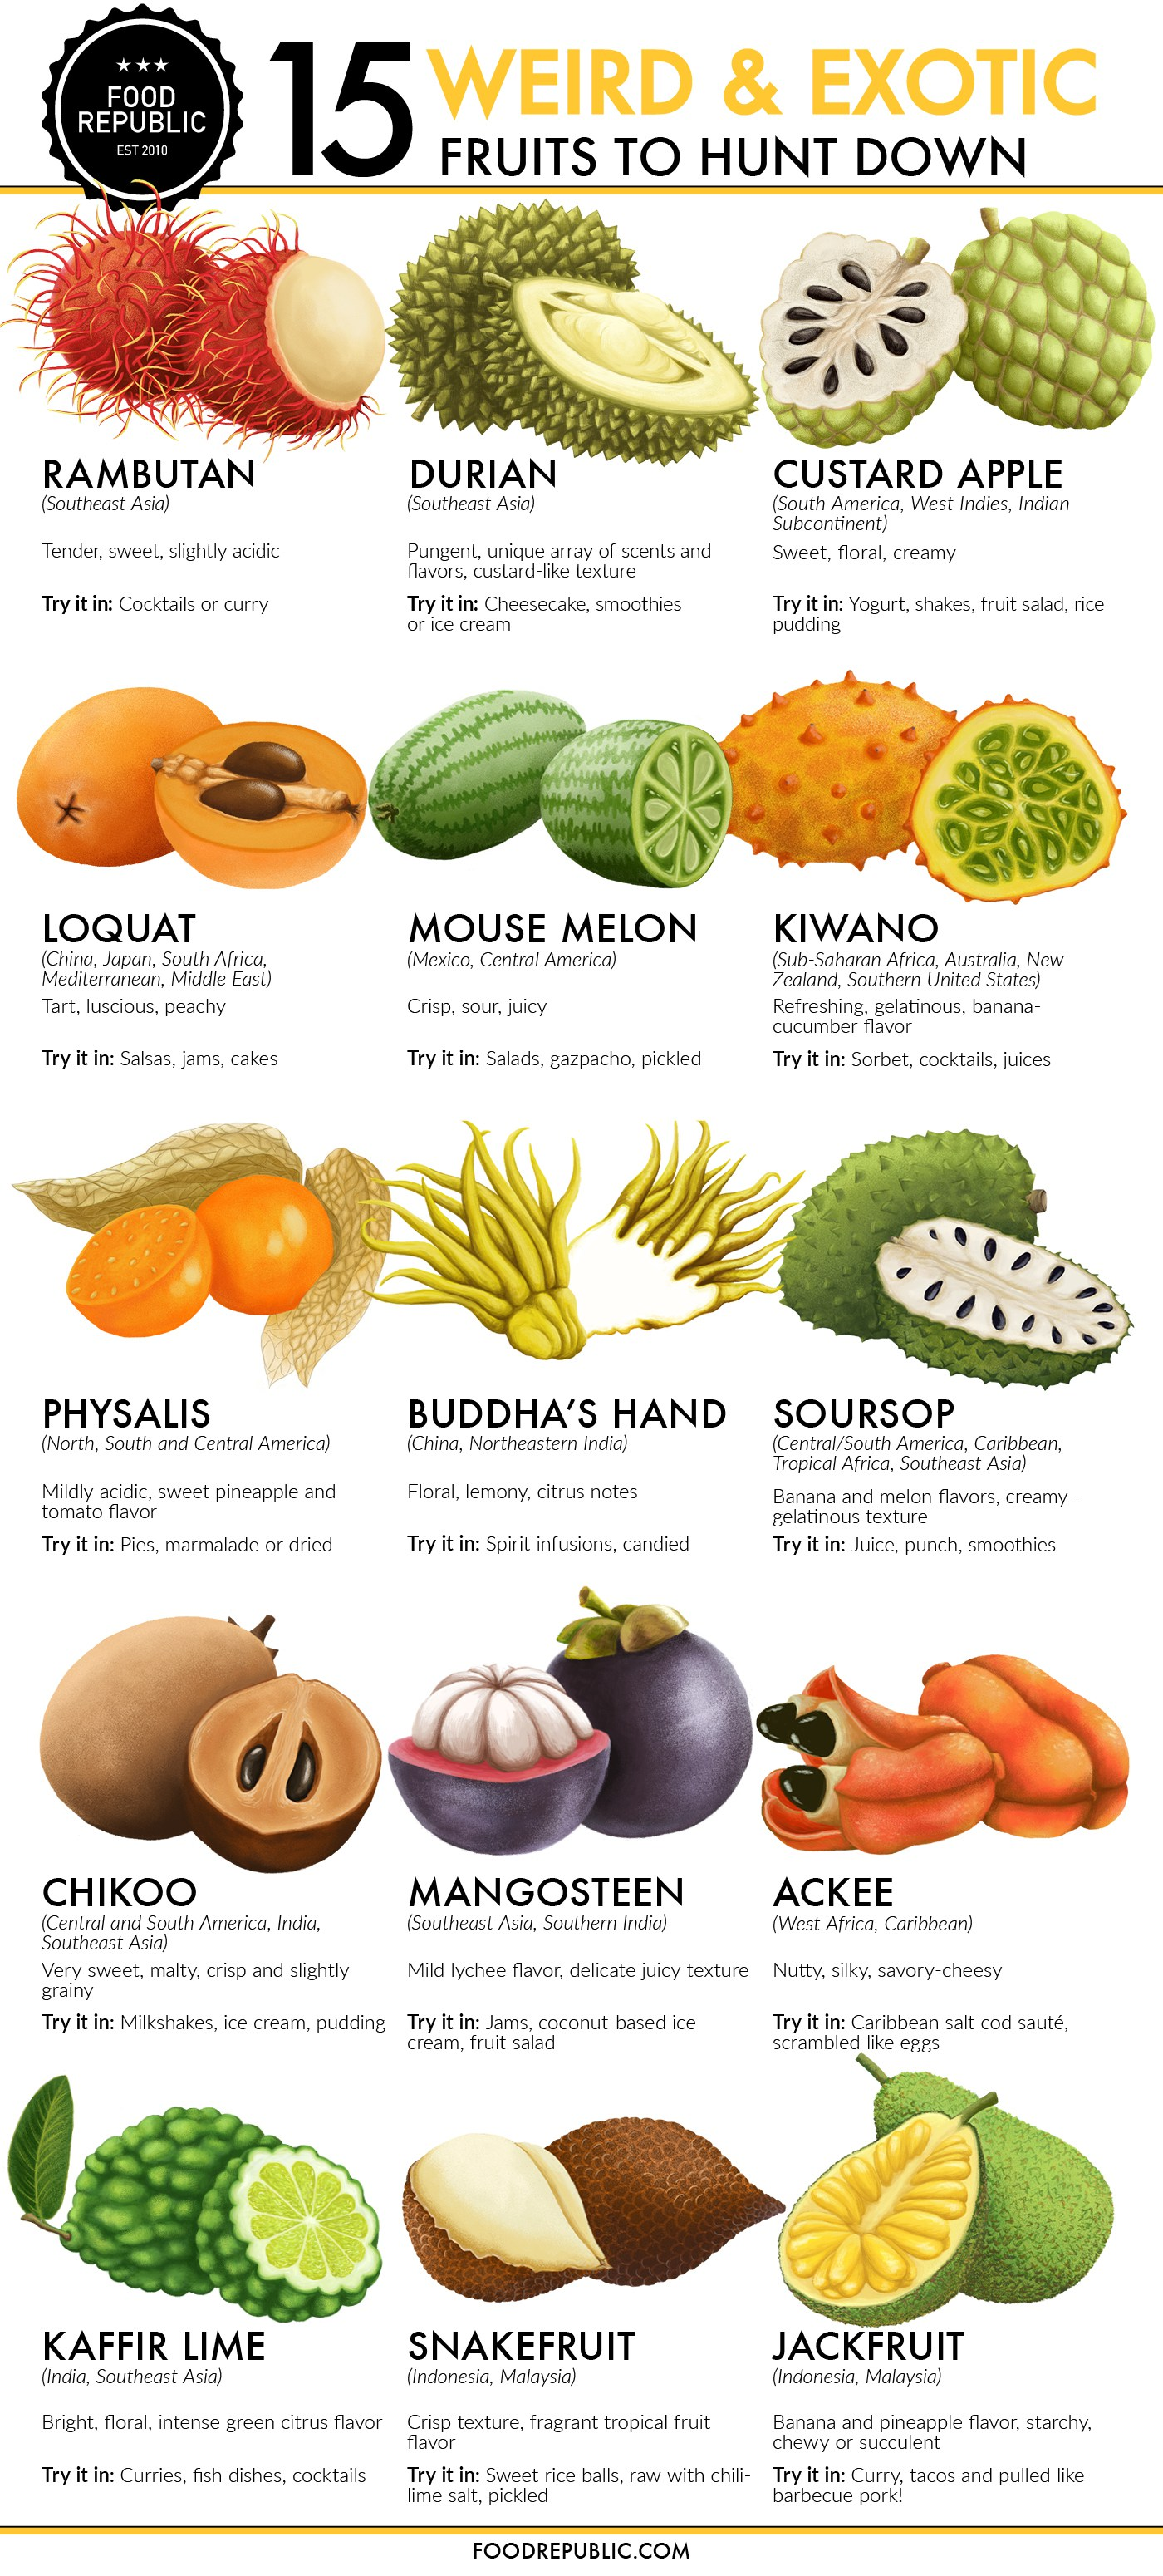 15 Exotic Fruits You Need To Try Right Now - Venngage Infographic Examples